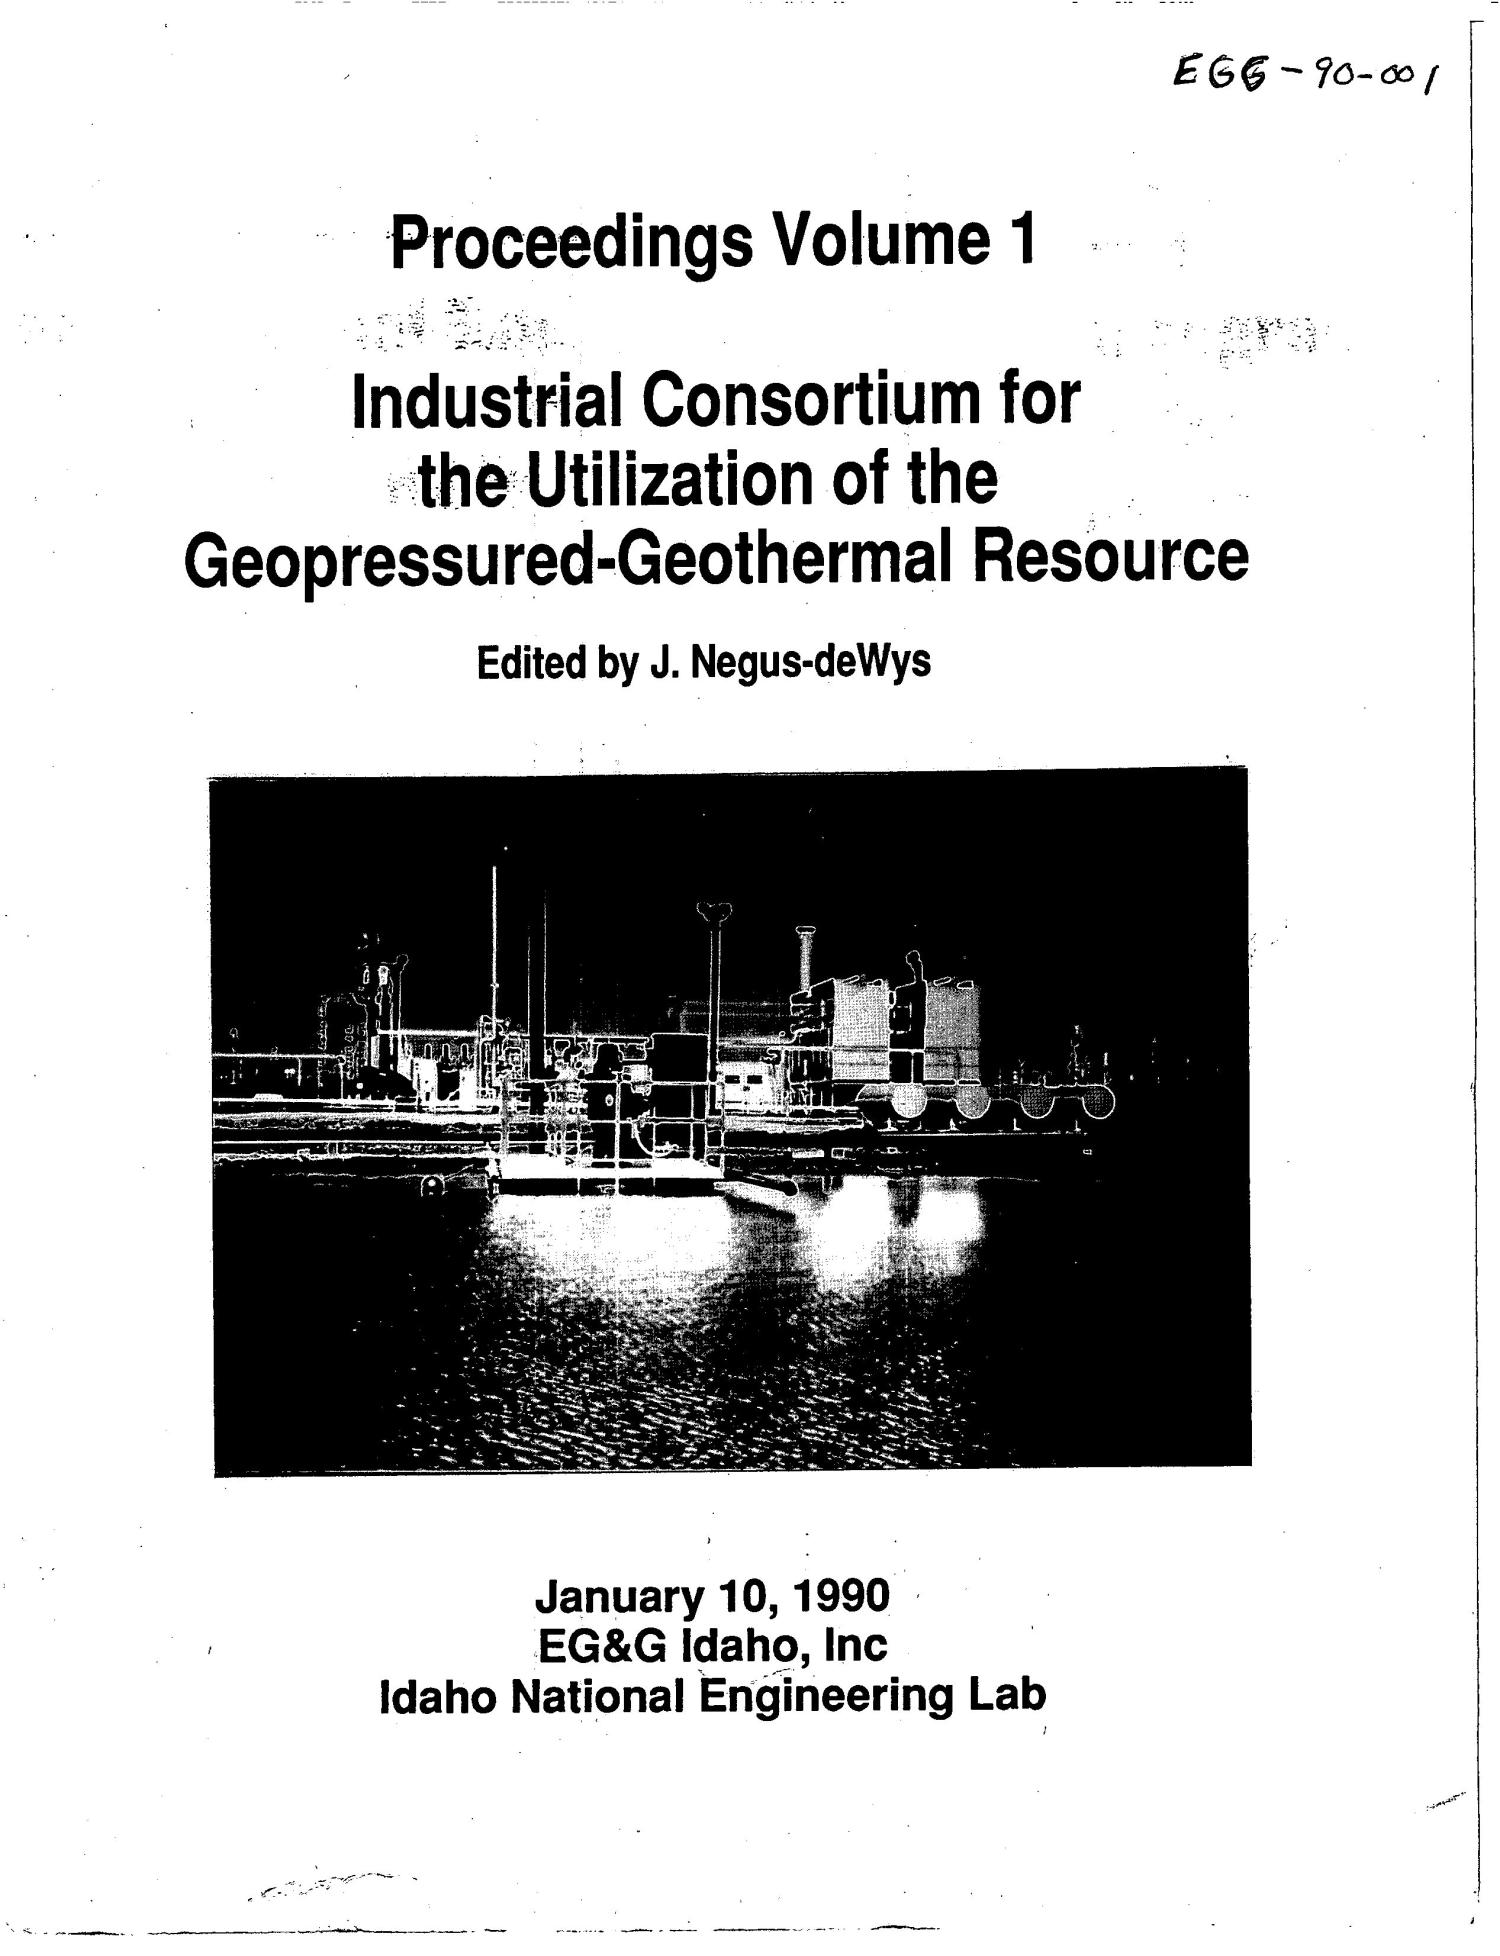 Industrial Consortium for the Utilization of the Geopressured-Geothermal Resource. Volume 1                                                                                                      [Sequence #]: 1 of 122